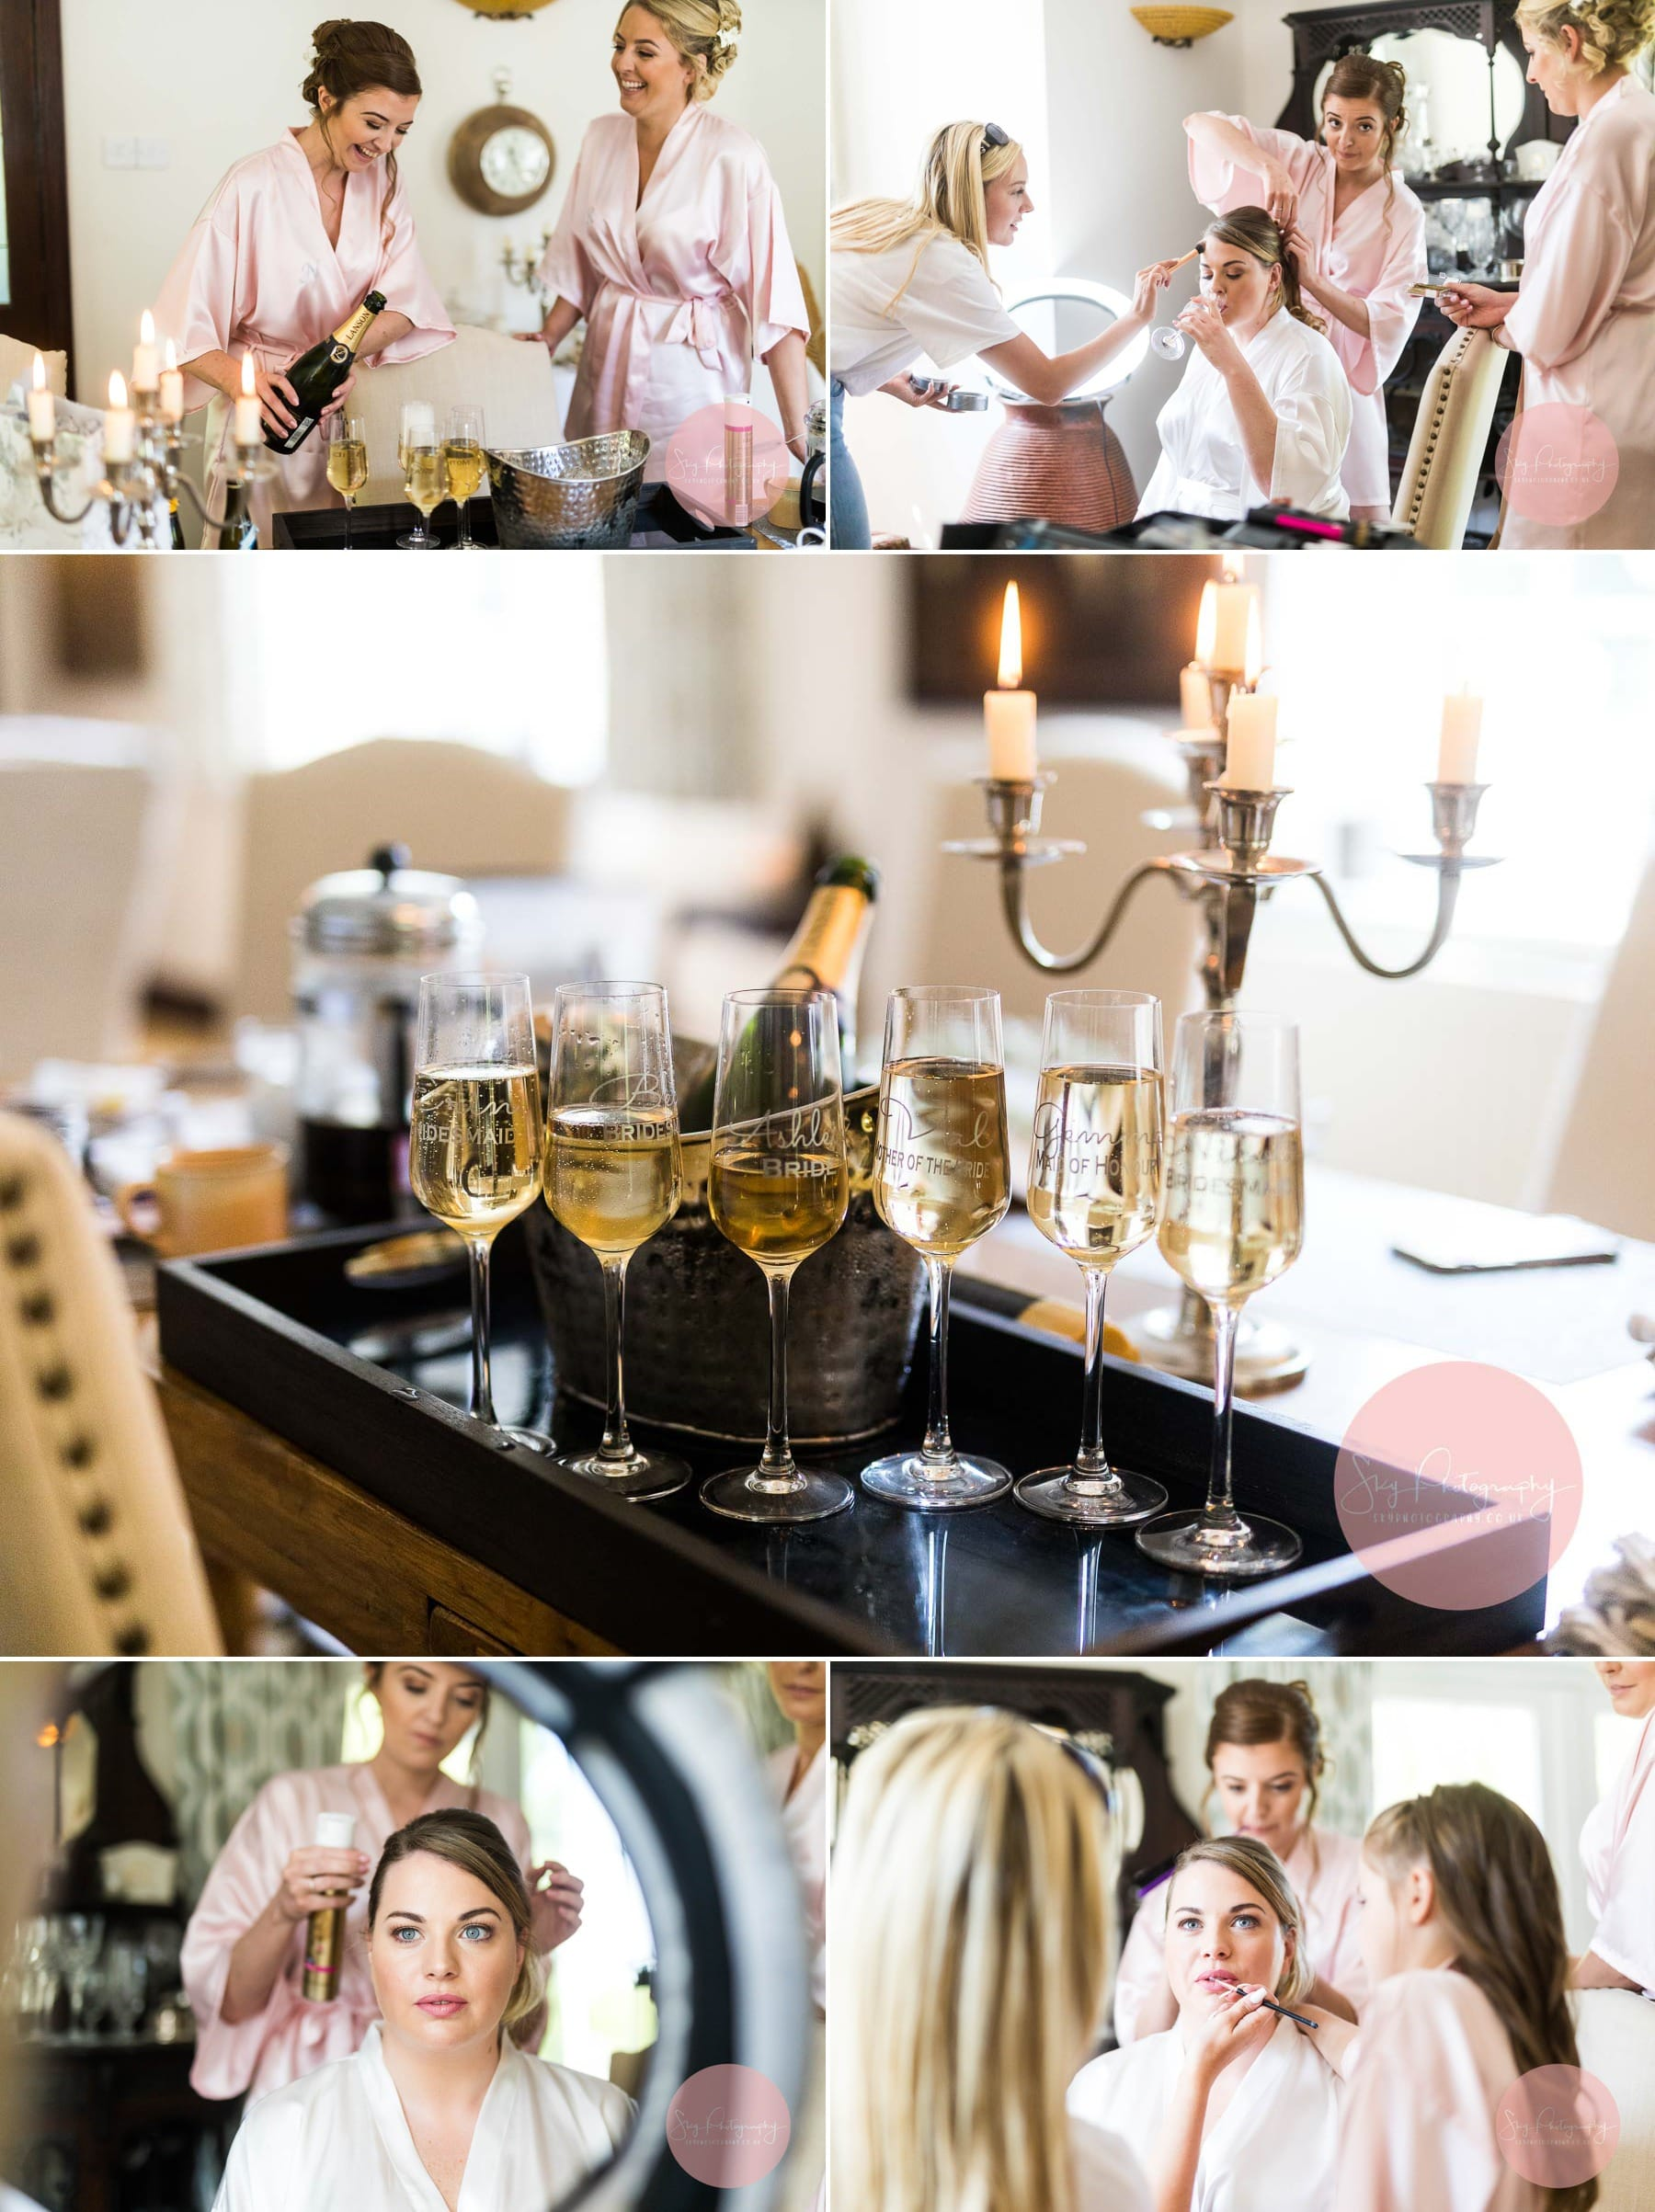 Dodford Grange airbnb, Wedding Preparations of bridesmaids and bride, Collage of 5 photos